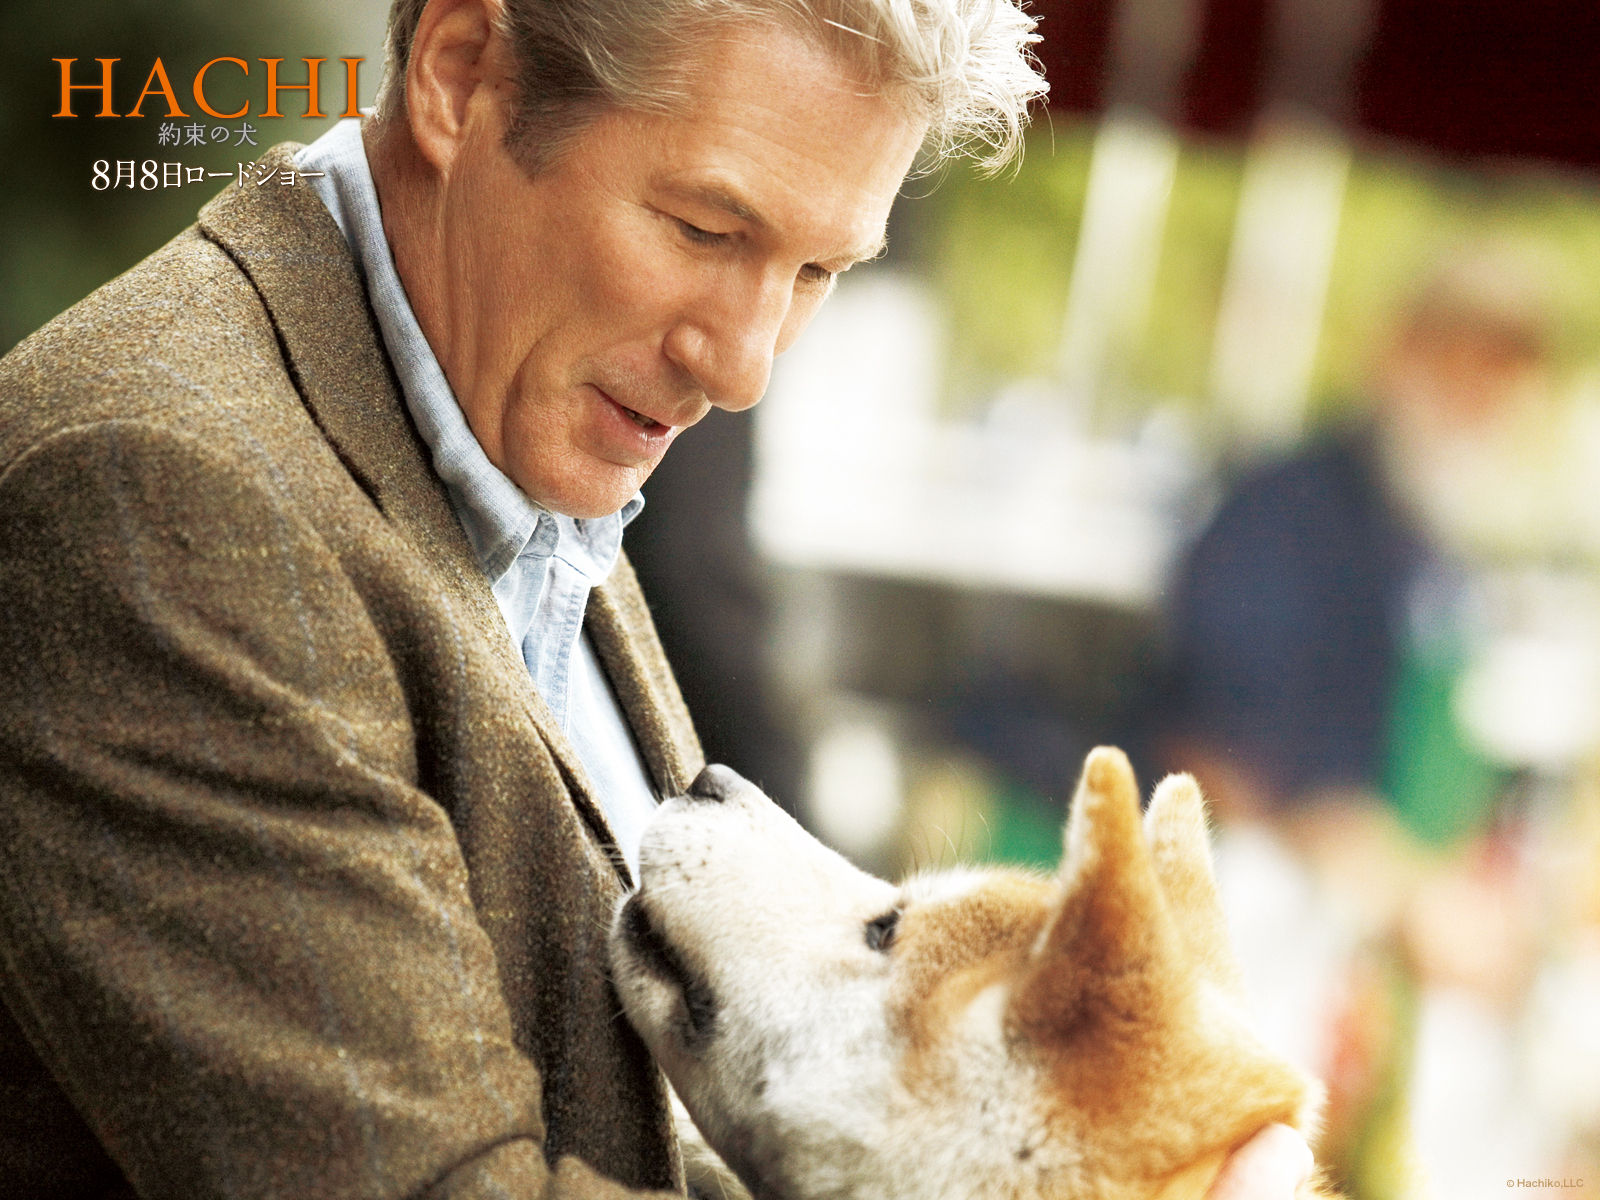 Hachiko - a dog story